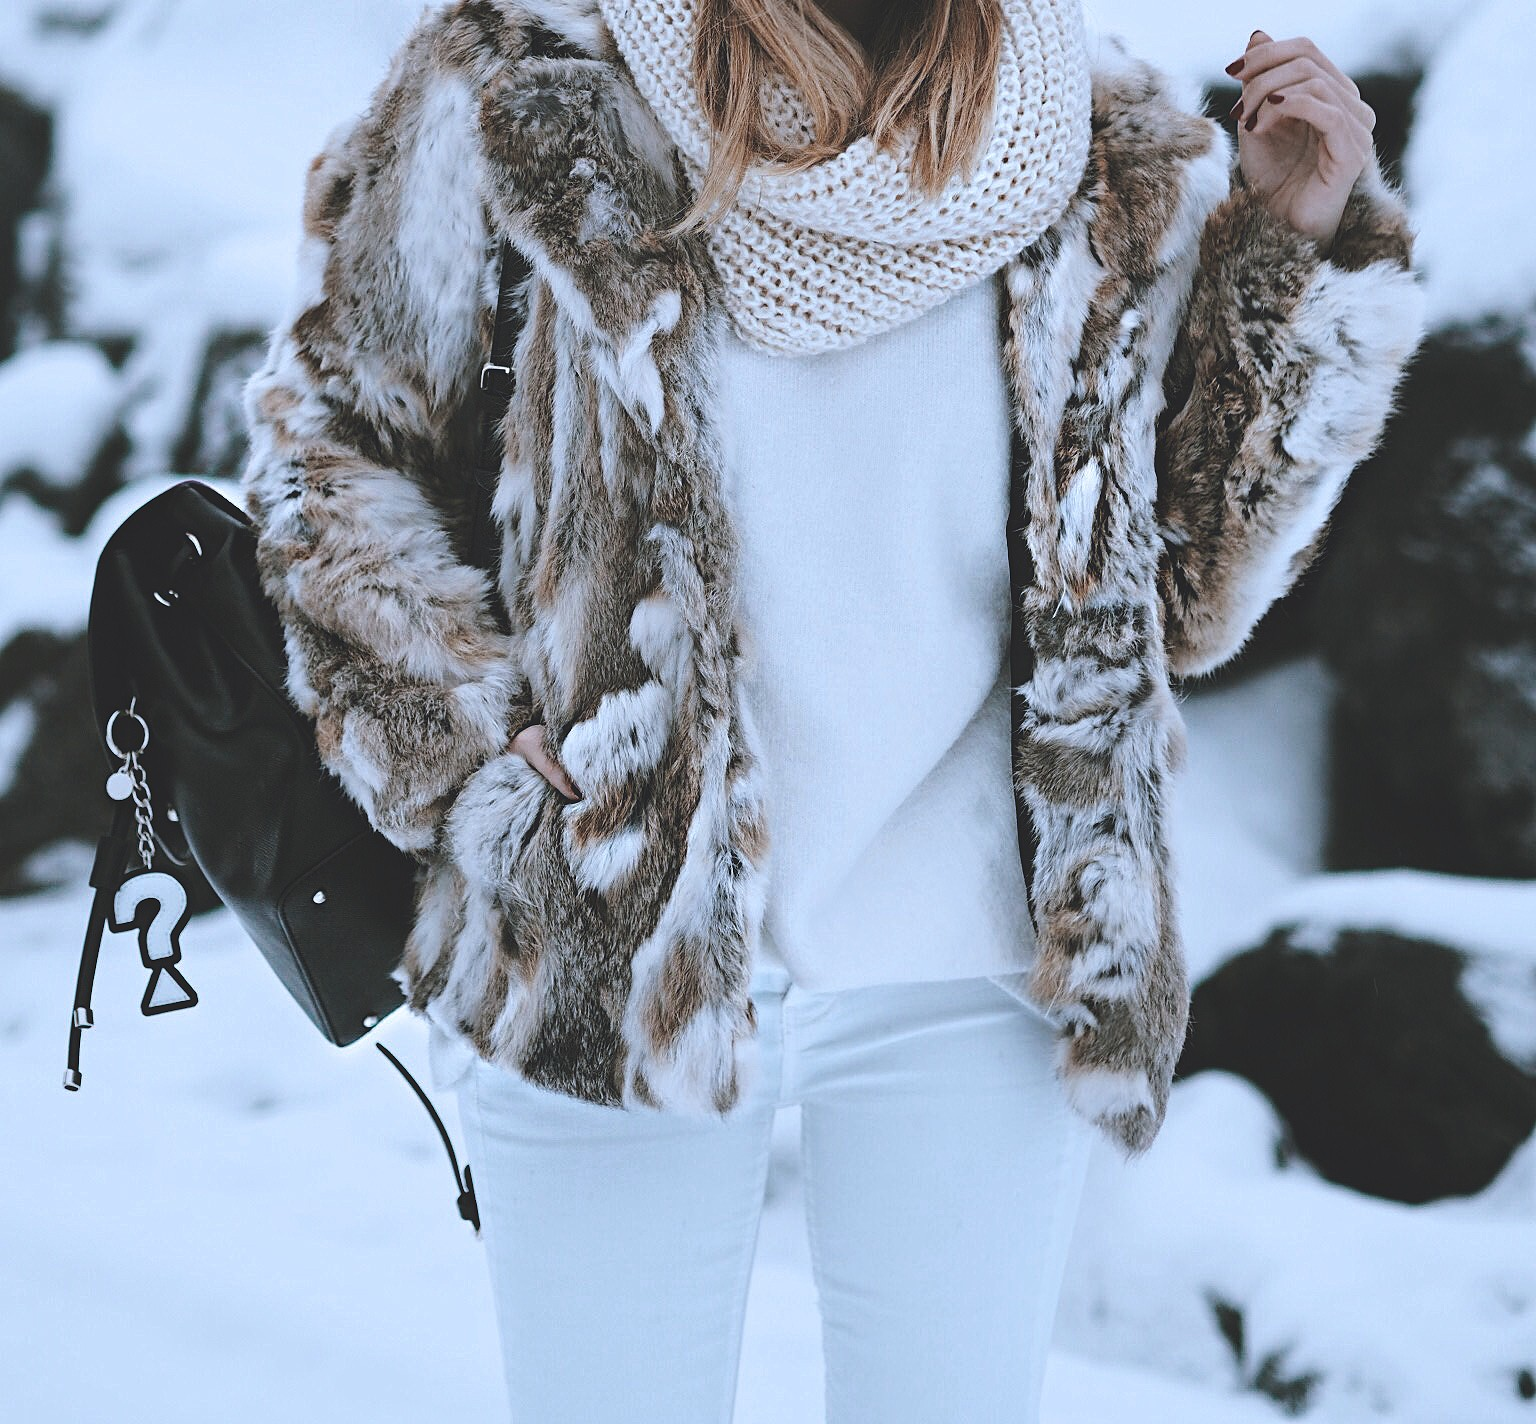 total-white-look-fashion-blogger-2017-travel-blog-winter-looks-norwayMonica-Sors-crucero-fiordos-noruegos-hurtigruten-2017-kong-haraldIMG_6408